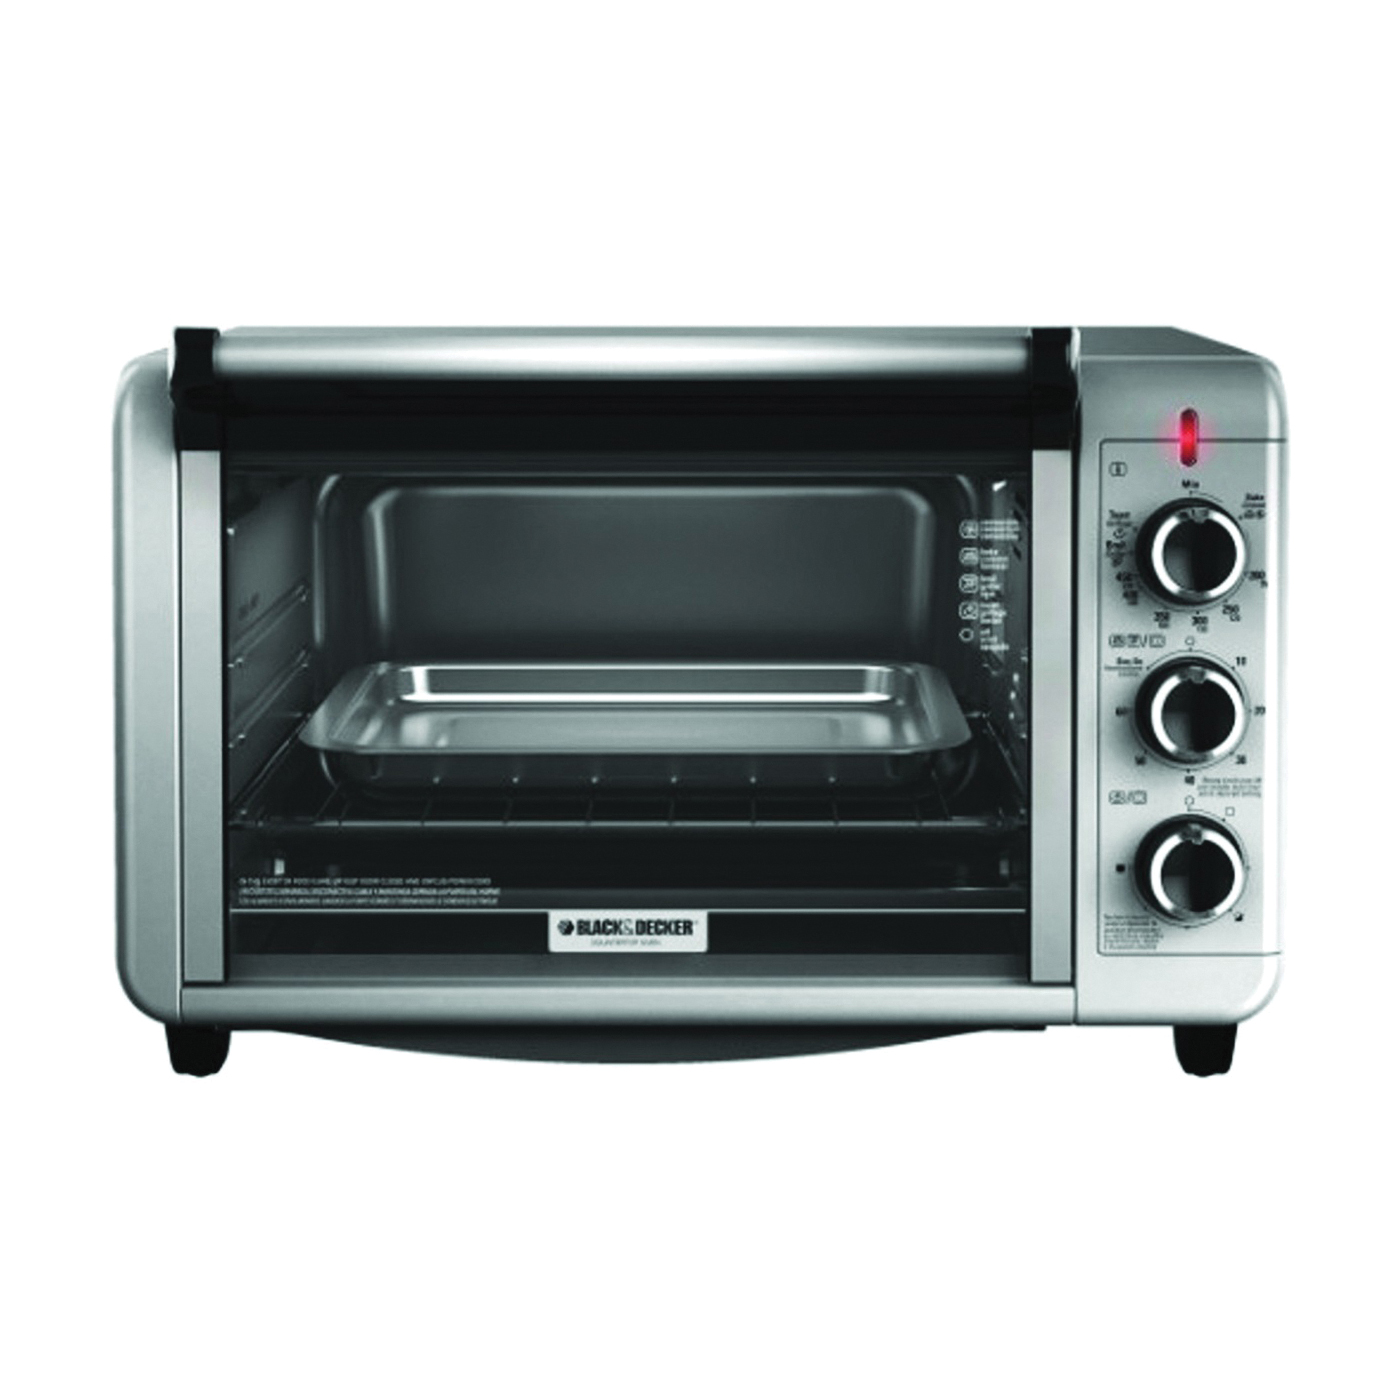 Picture of Black+Decker TO3210SSD Toaster Oven, 1500 W, Knob Control, 6 Slice/Hr, Metal, Silver